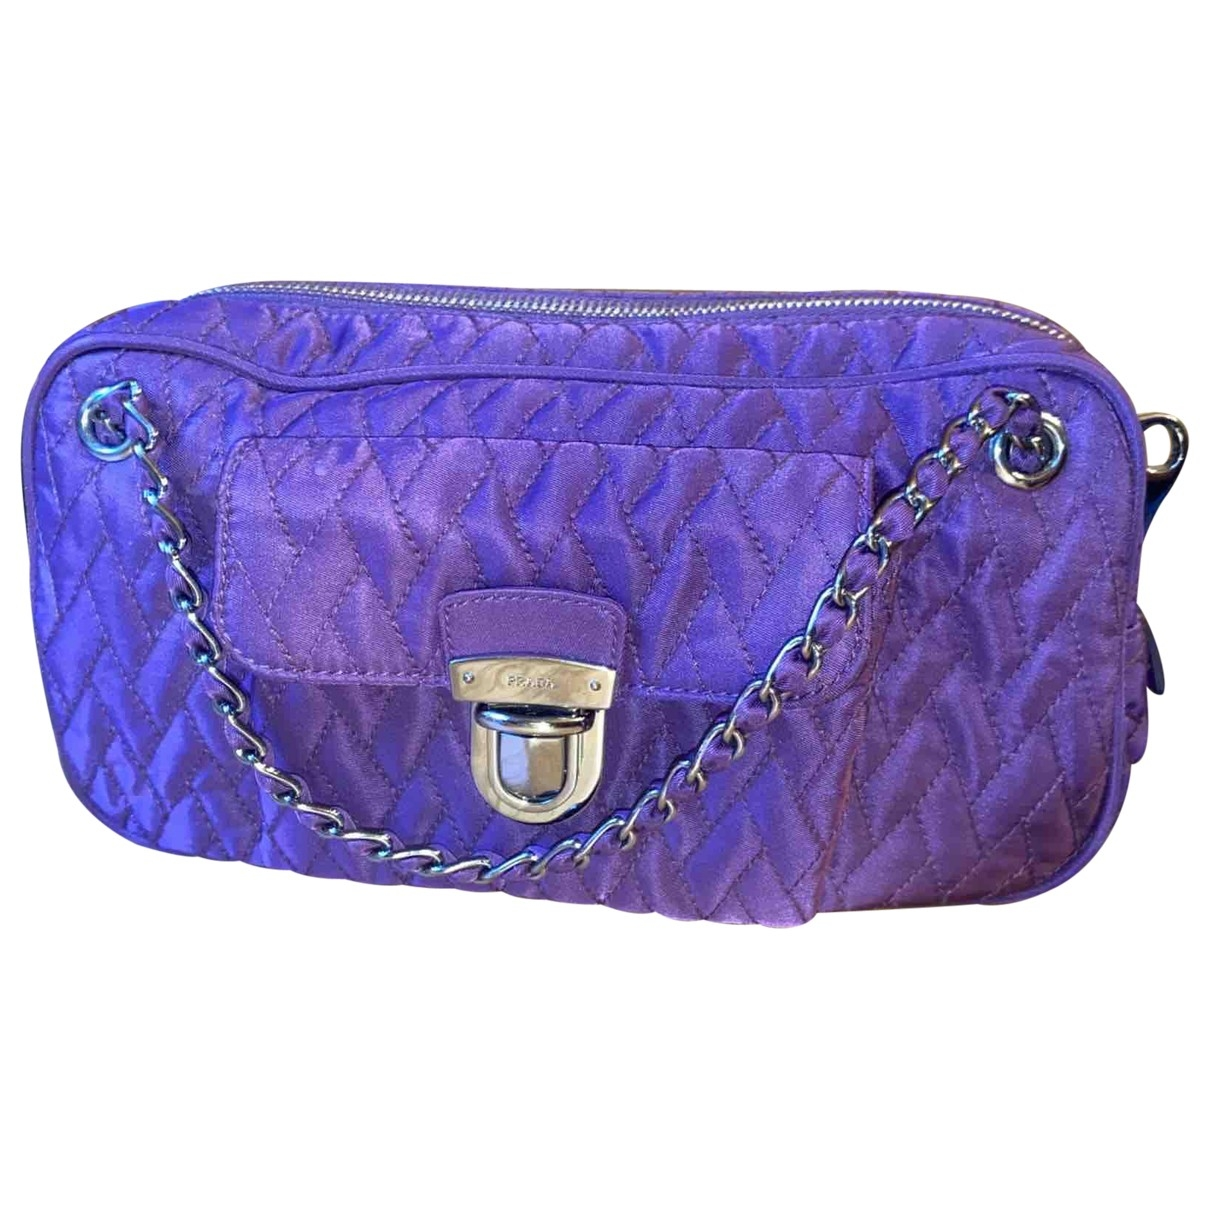 Prada \N Purple Cloth handbag for Women \N